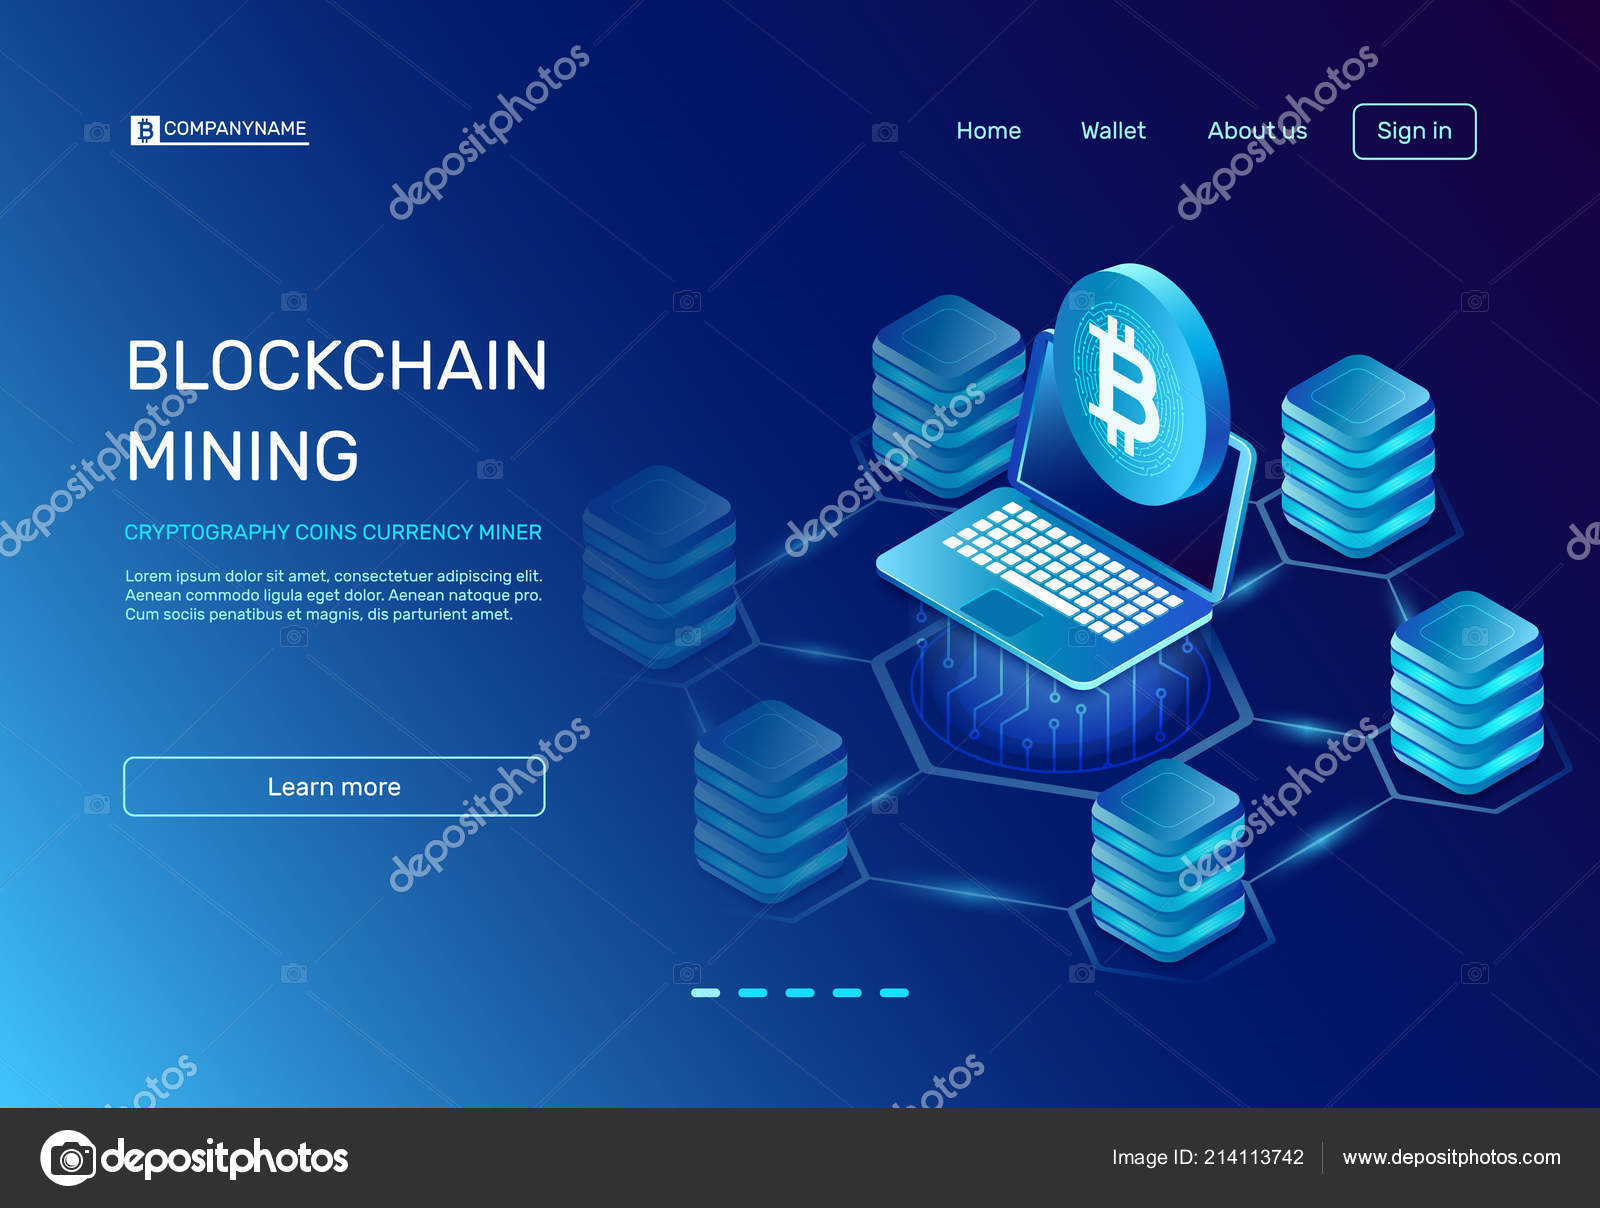 Blockchain Mining Cryptography Coins Currency Miner On Laptop E Commerce Block Diagram Payment Ethereal Mine Connected To Bitcoin Farms Network Crypto World Business Banking